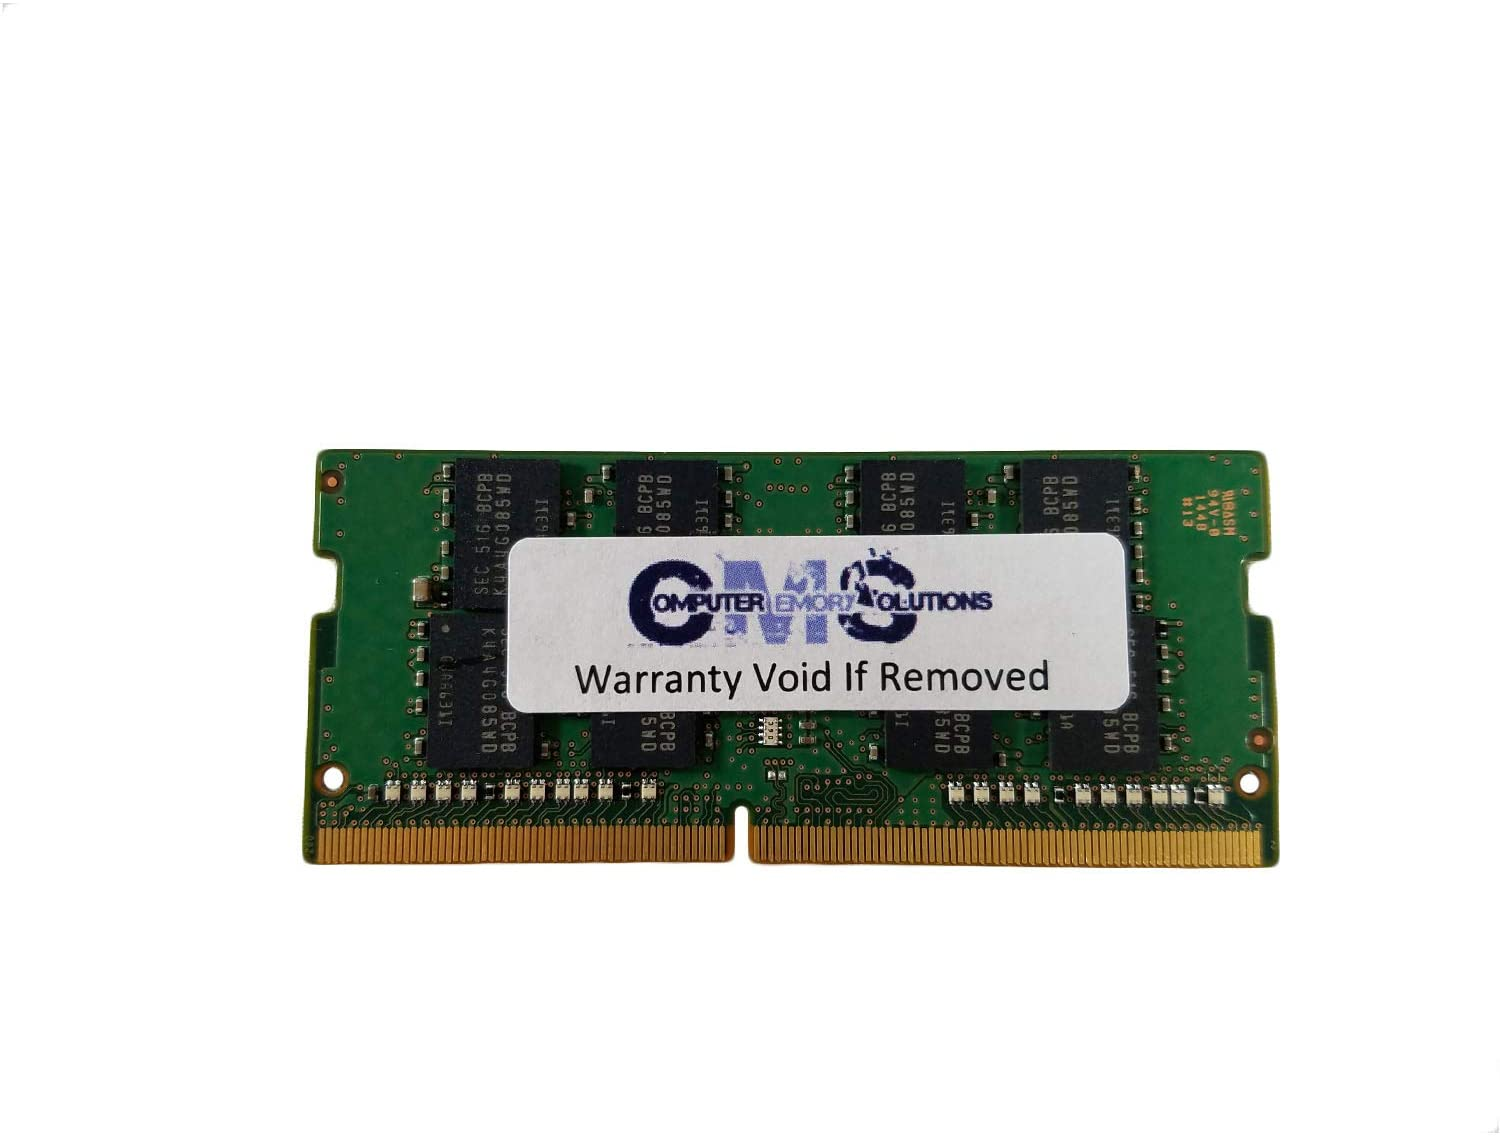 16GB (1X16GB) Memory Ram Compatible with Acer Aspire 5 A515-52-53QM, A515-52G, A515-52K, A515-43 by CMS c107